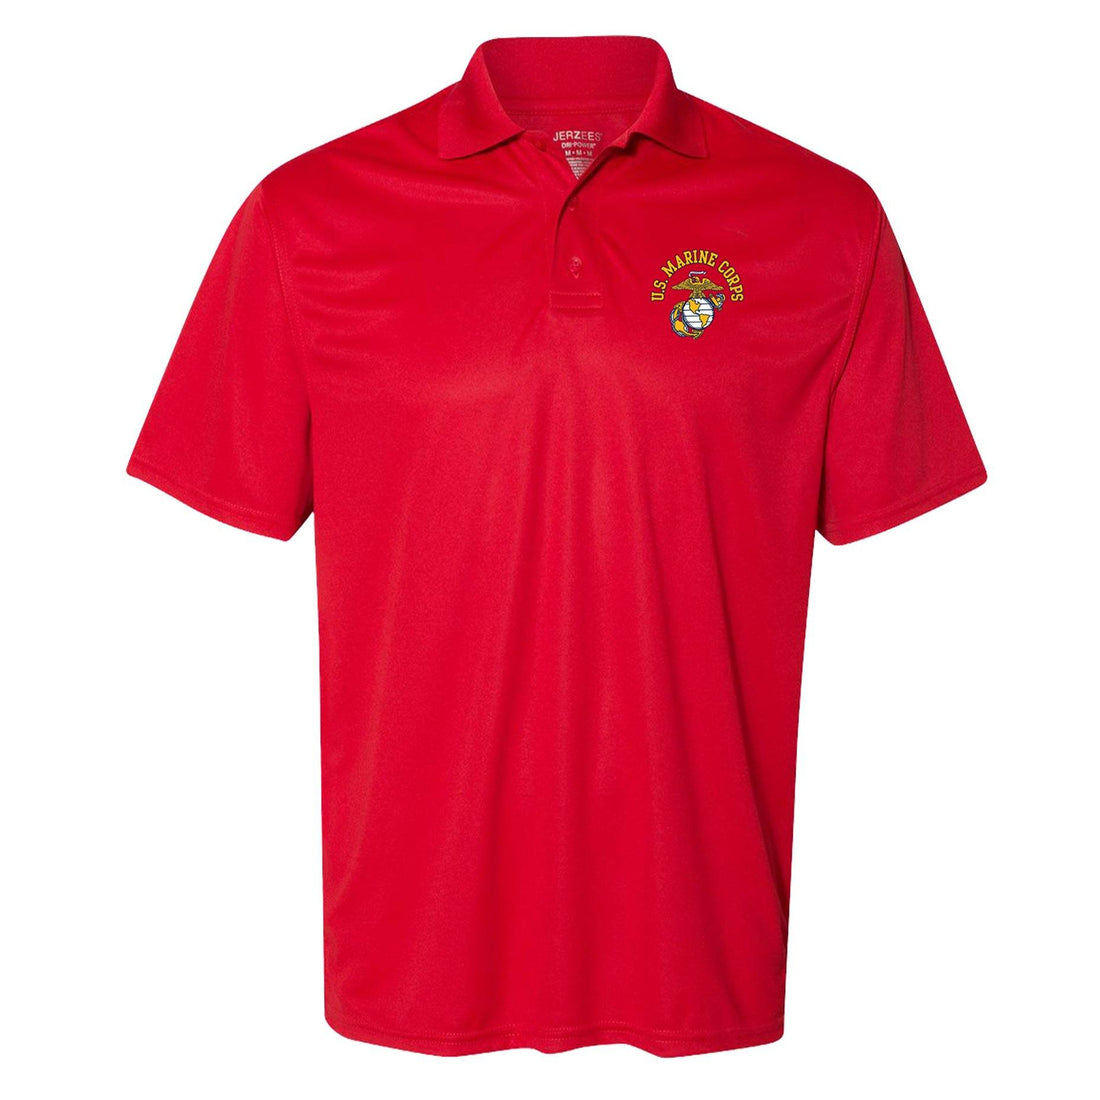 COMBAT CHARGED US Marine Corps EGA Screen Printed Dri-Fit Performance Polo - Marine Corps Direct